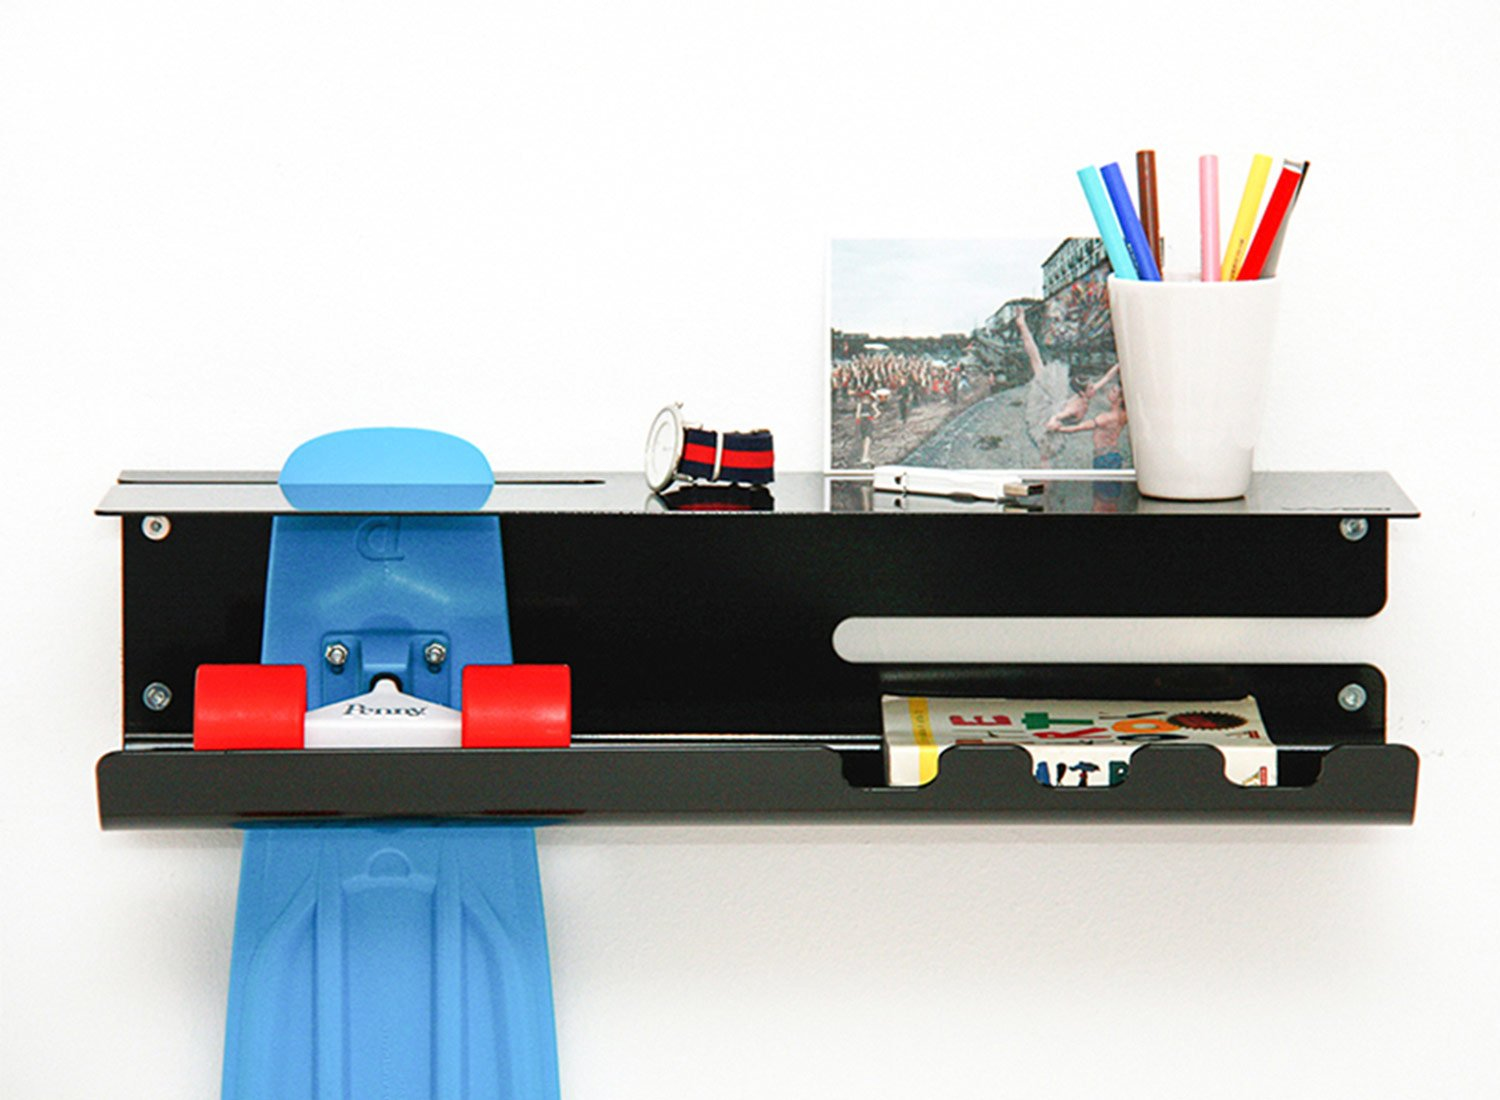 wall-ride-skateboard-longboard-storage-solution-by-zanocchi-starke-3